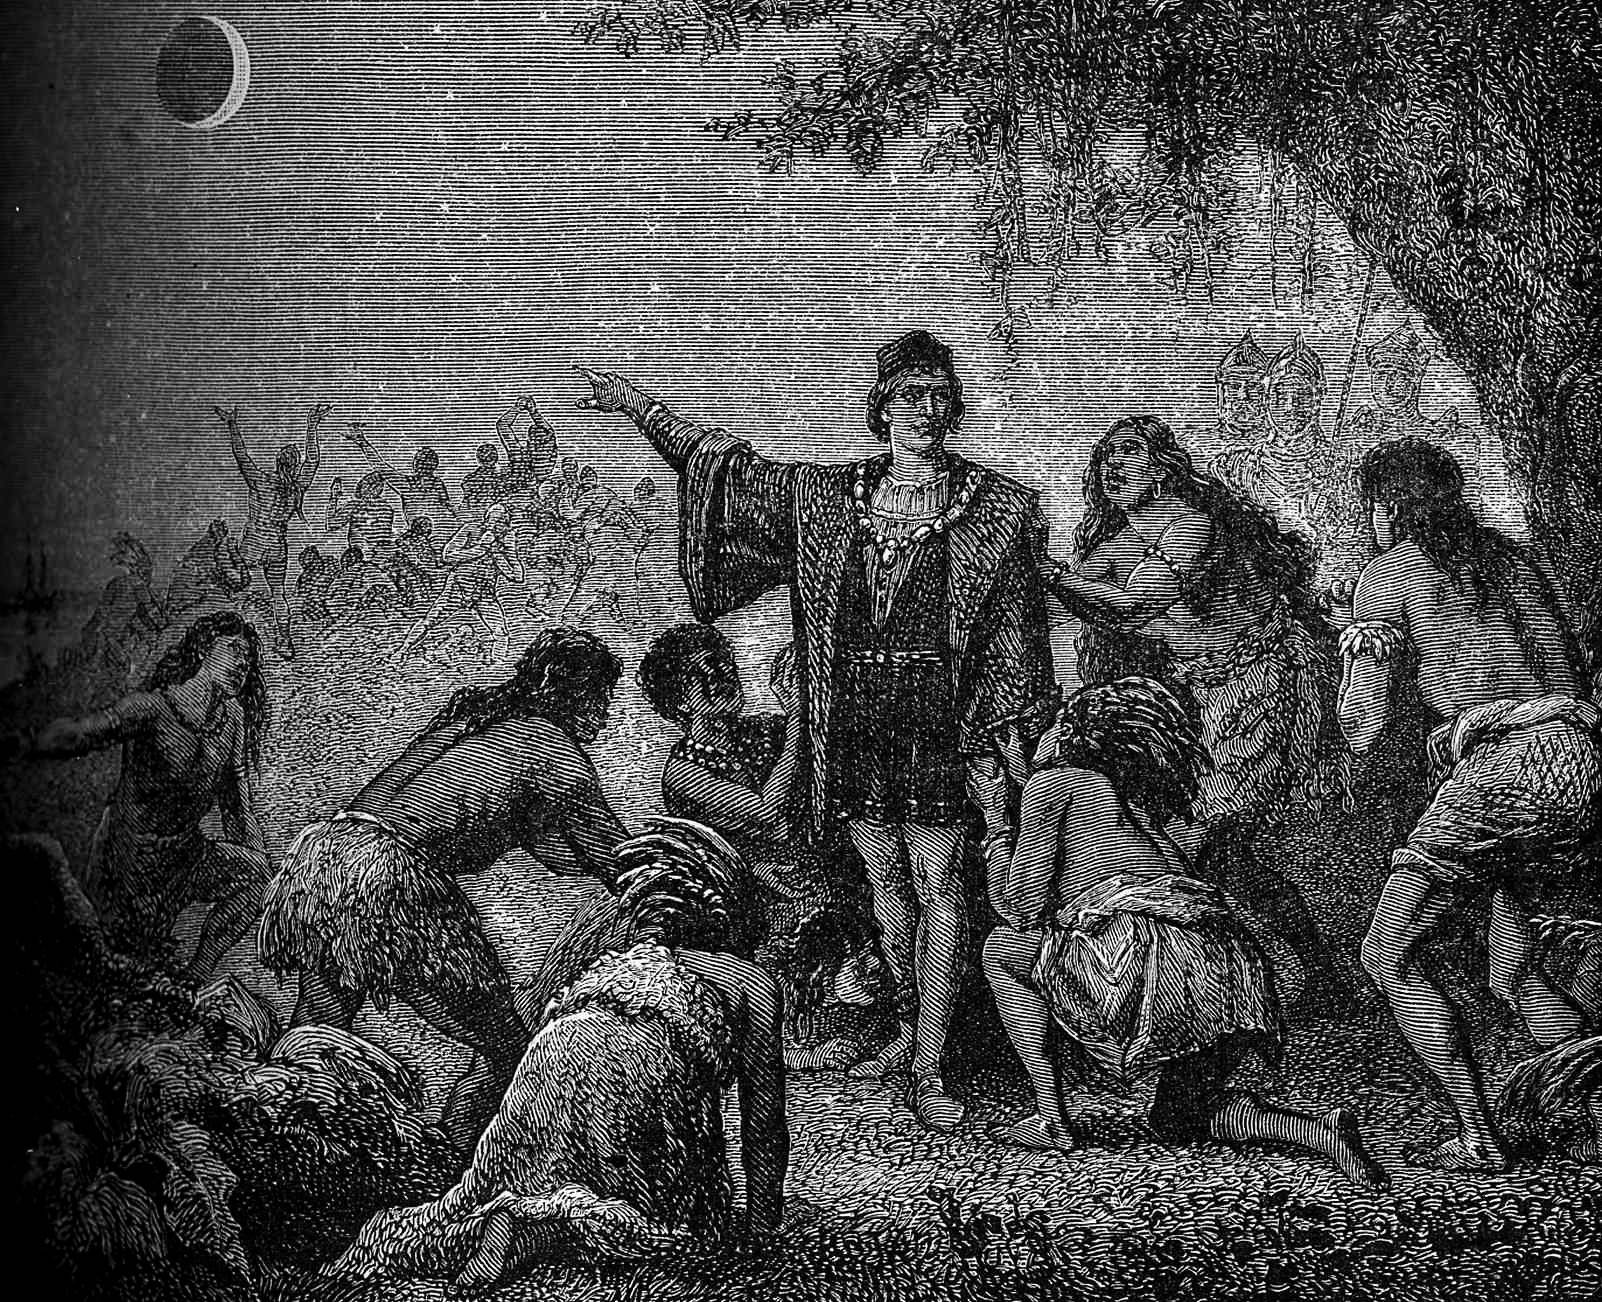 A man in Western dress points at the moon during an eclipse while indigenous people surround him.